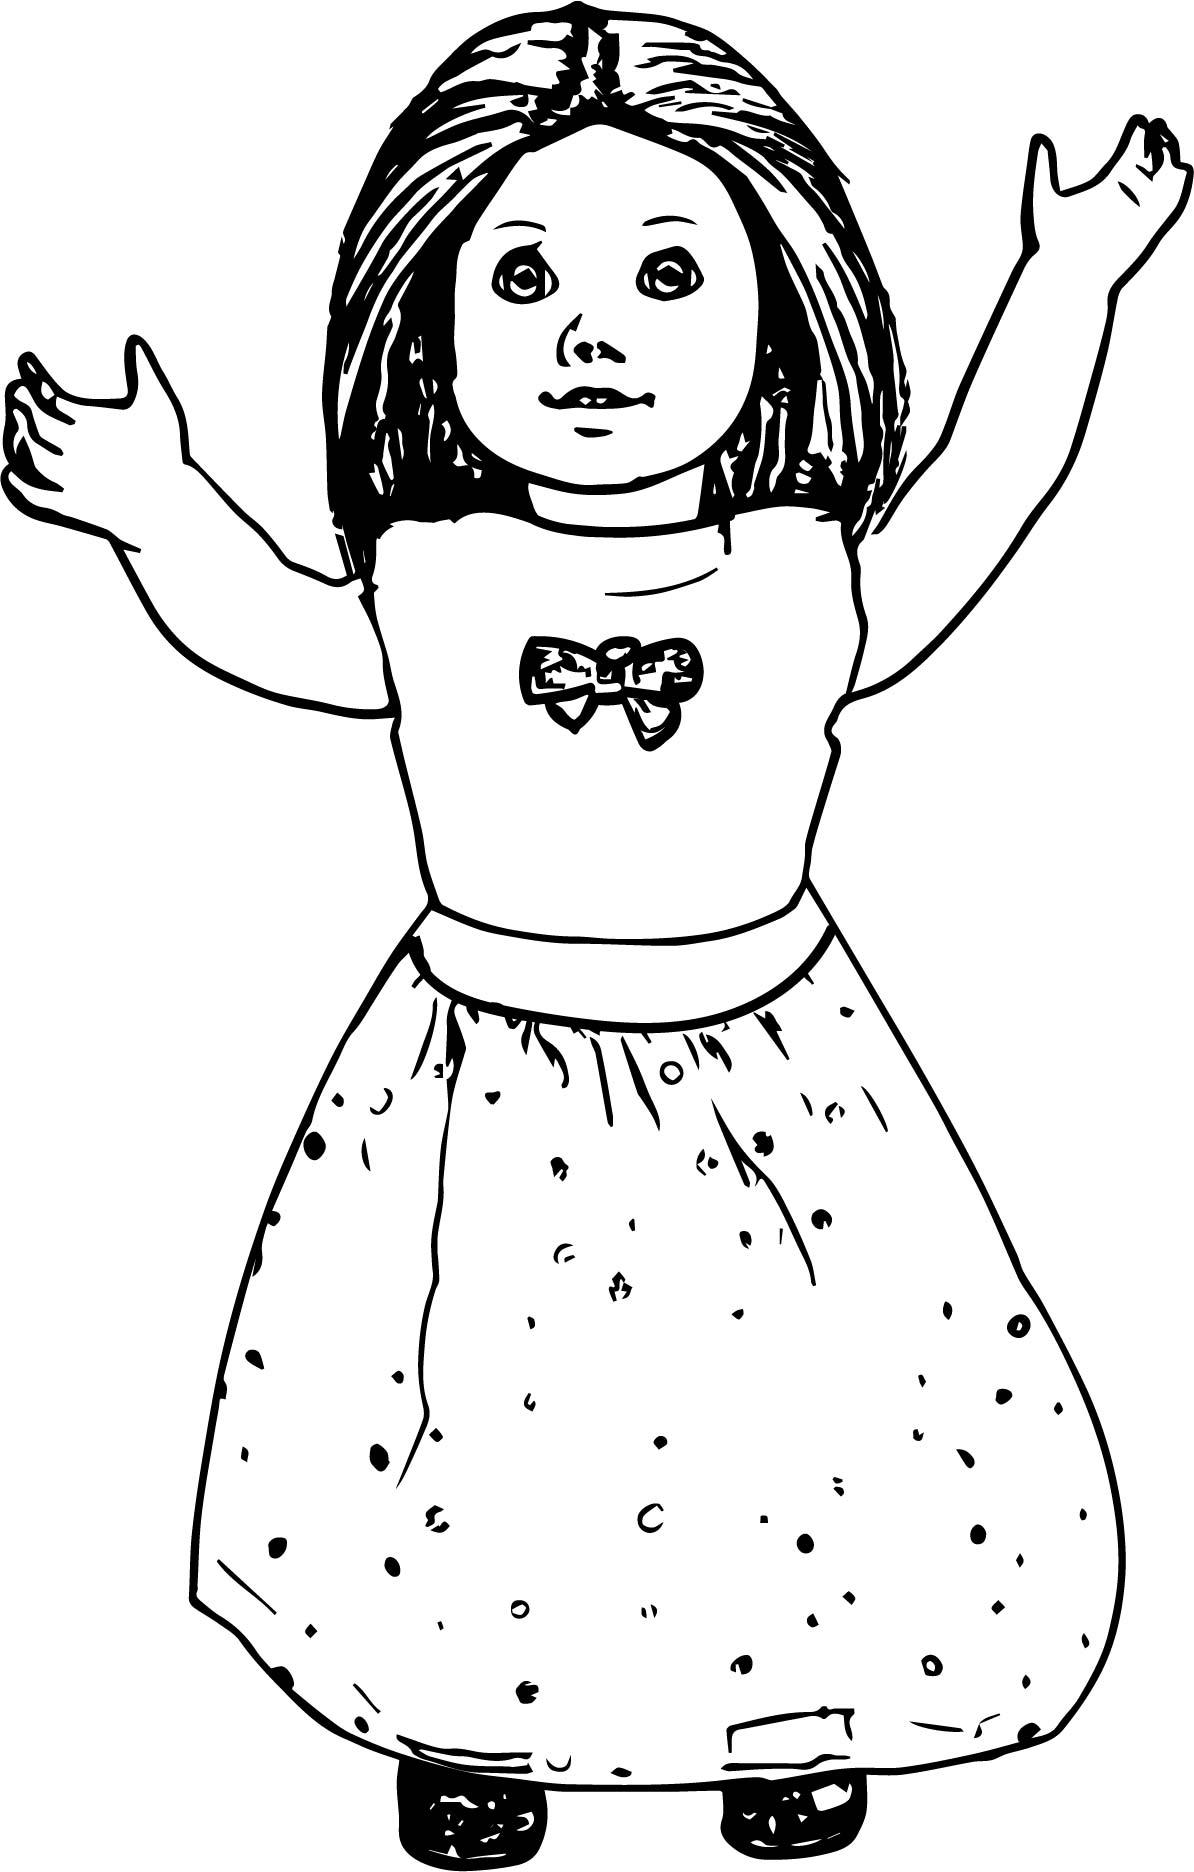 pictures of american girl dolls to color american girl coloring pages kit at getcoloringscom of american dolls pictures girl color to